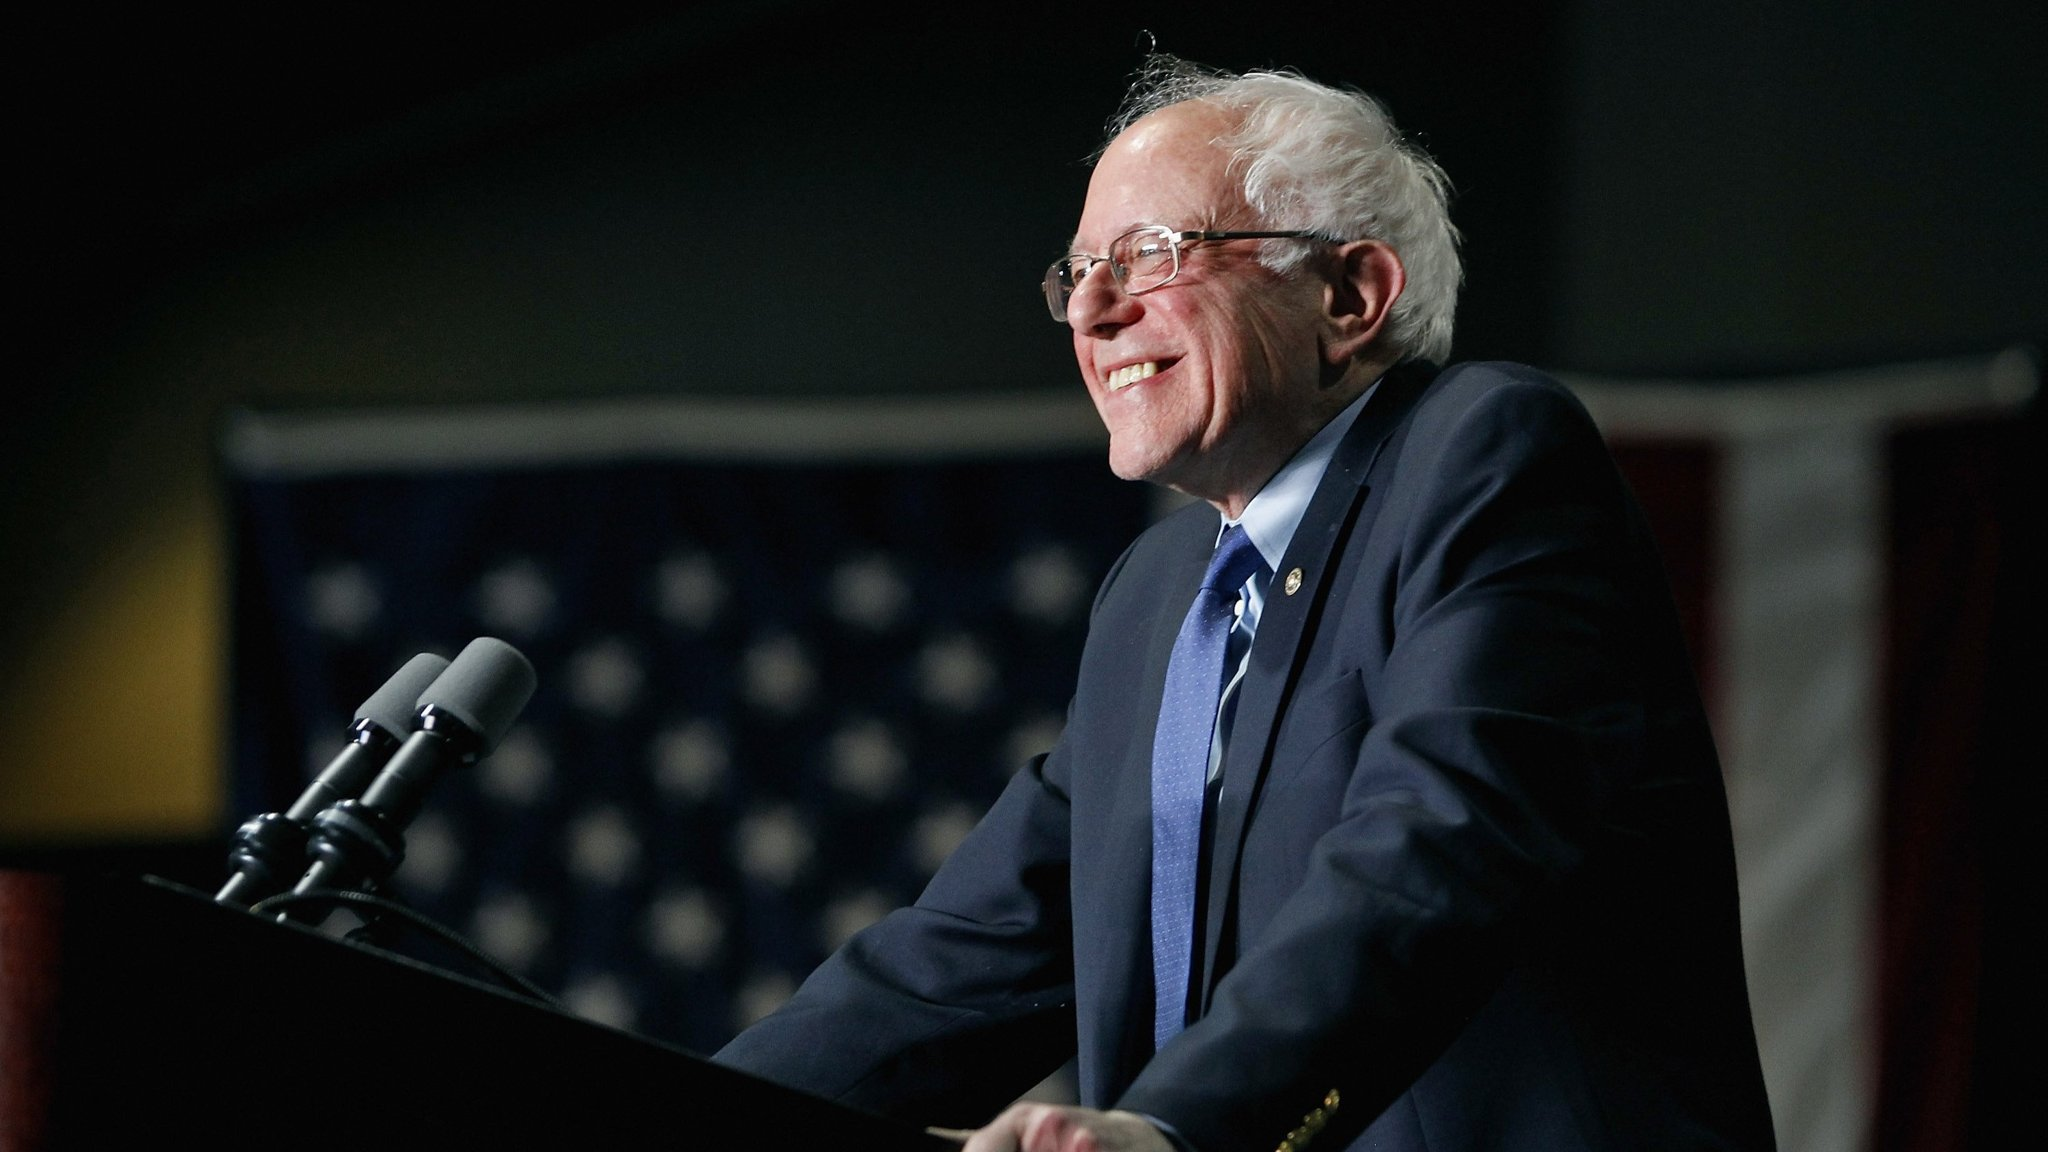 PHOENIX, AZ - MARCH 15: Democratic presidential candidate Sen. Bernie Sanders (D-VT) speaks to a crowd gathered at the Phoenix Convention Center during a campaign rally on March 15, 2016 in Phoenix, Arizona. Hillary Clinton won the Democratic primary elections in Florida, North Carolina and Ohio, while Missouri and Illinois remain tight races. (Photo by Ralph Freso/Getty Images)